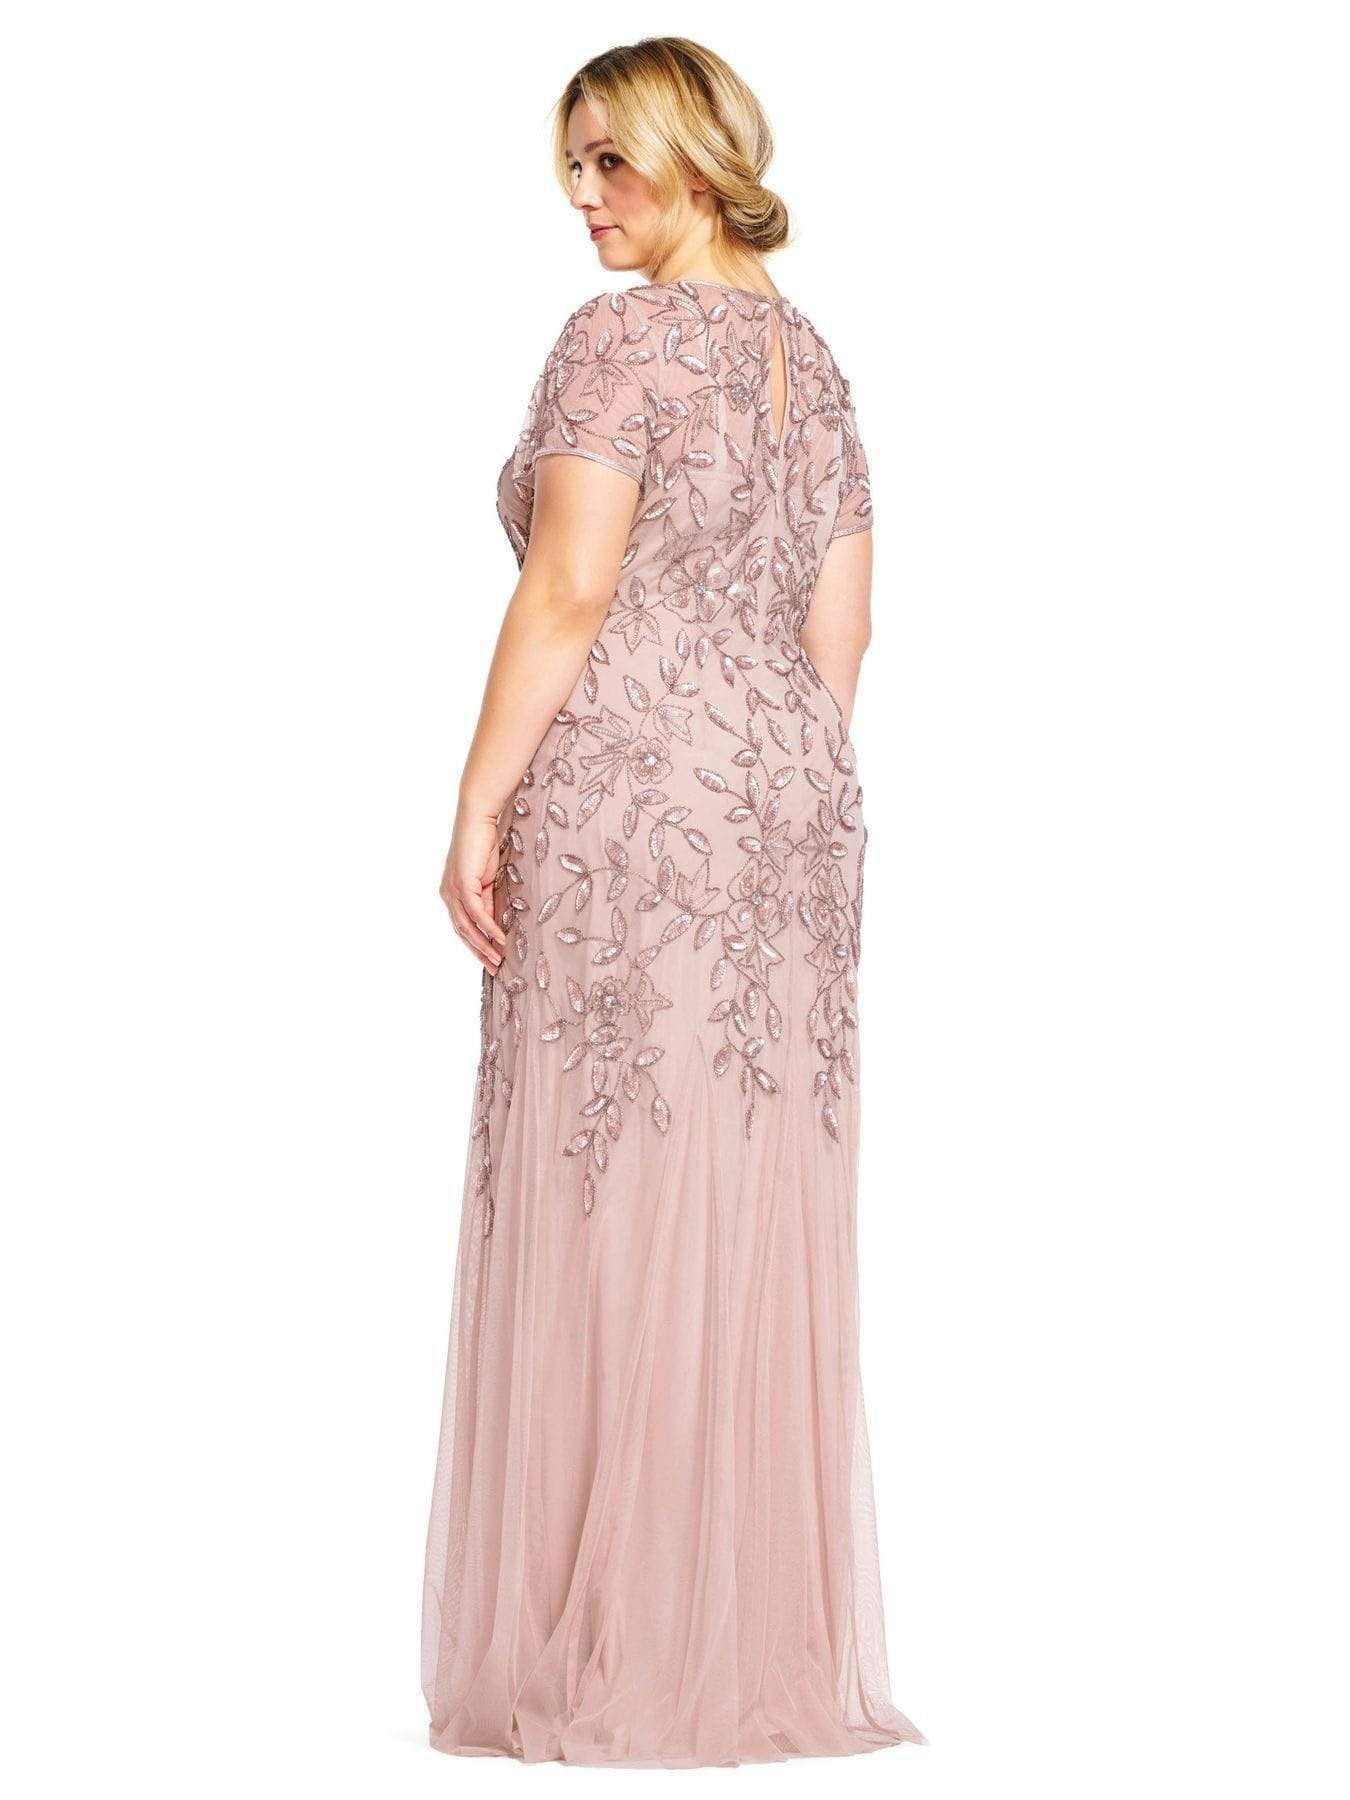 Adrianna Papell Floral Beaded Godet Gown Rose Gold Dress In 2020 Long Mothers Dress Mother Of The Bride Dresses Long Mother Of The Bride Suits